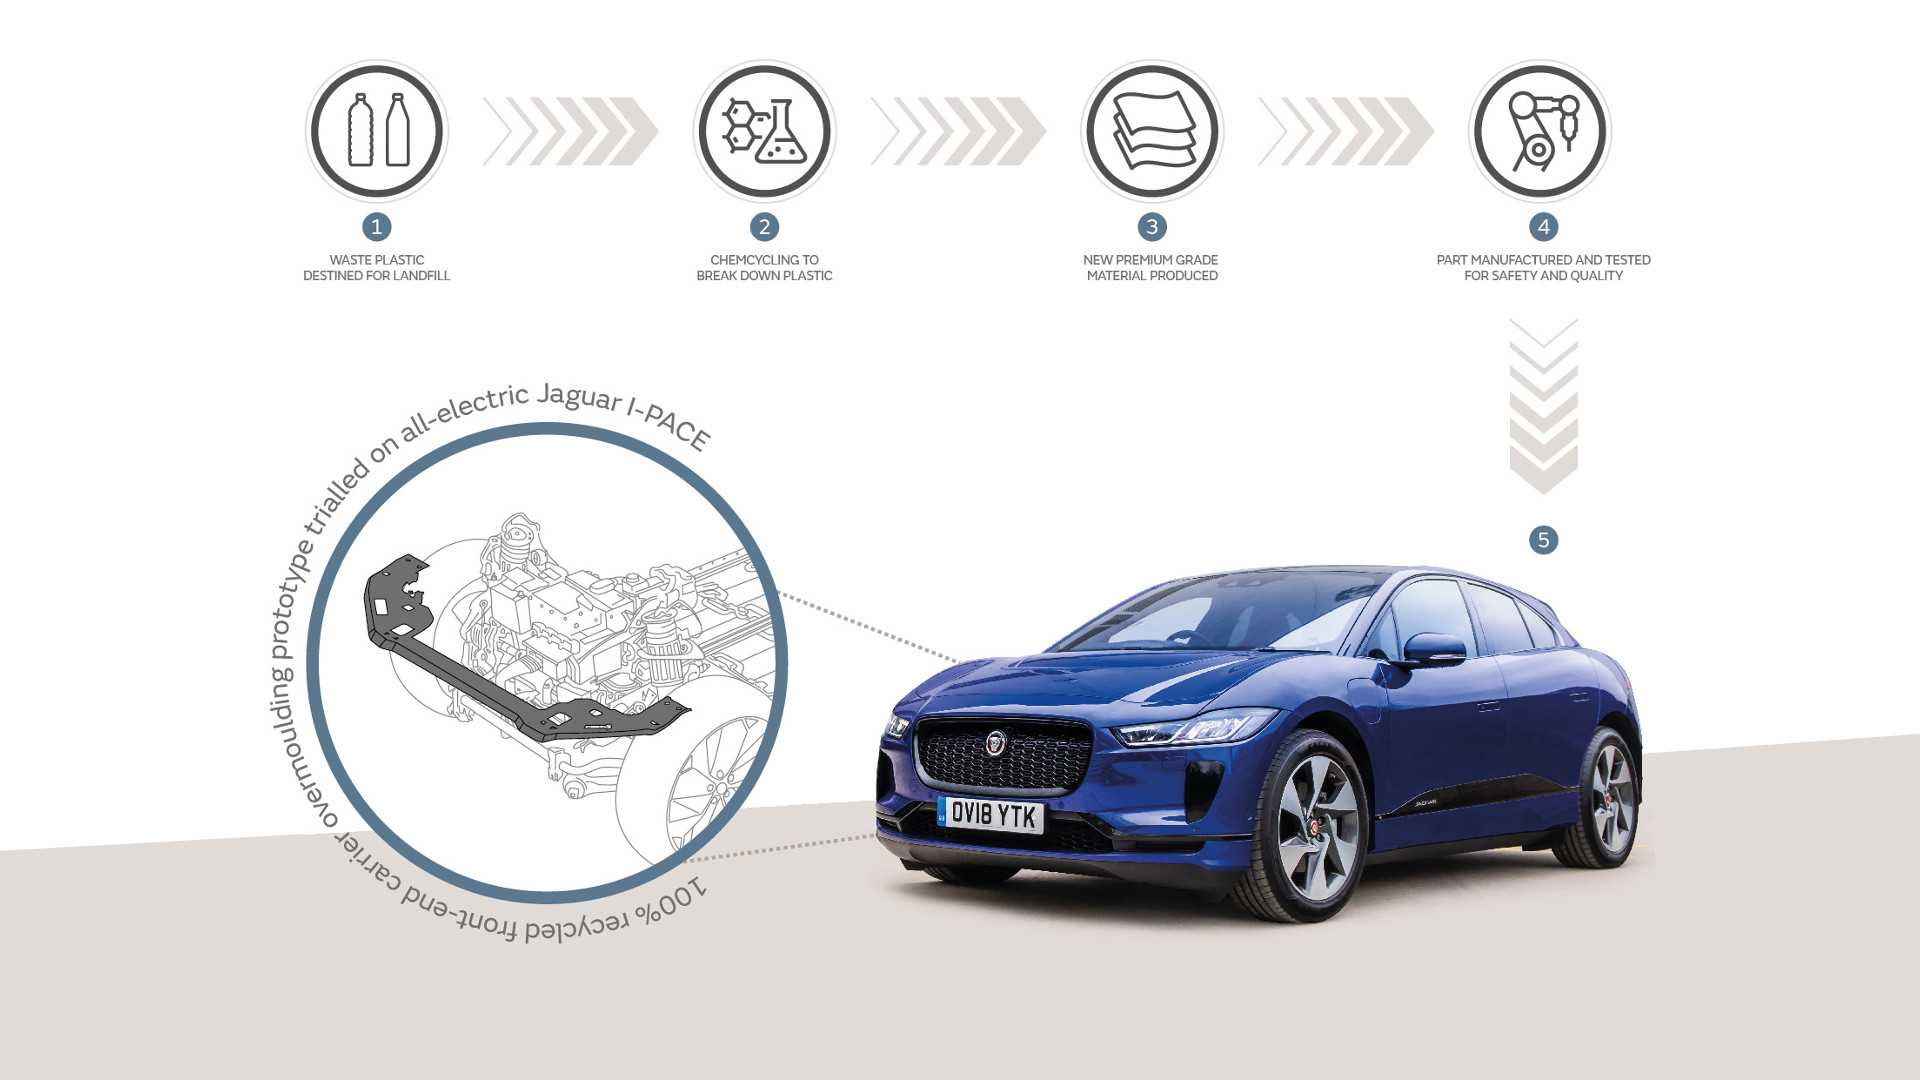 Jaguar Land Rover Wants To Turns Rubbish Into Car Parts